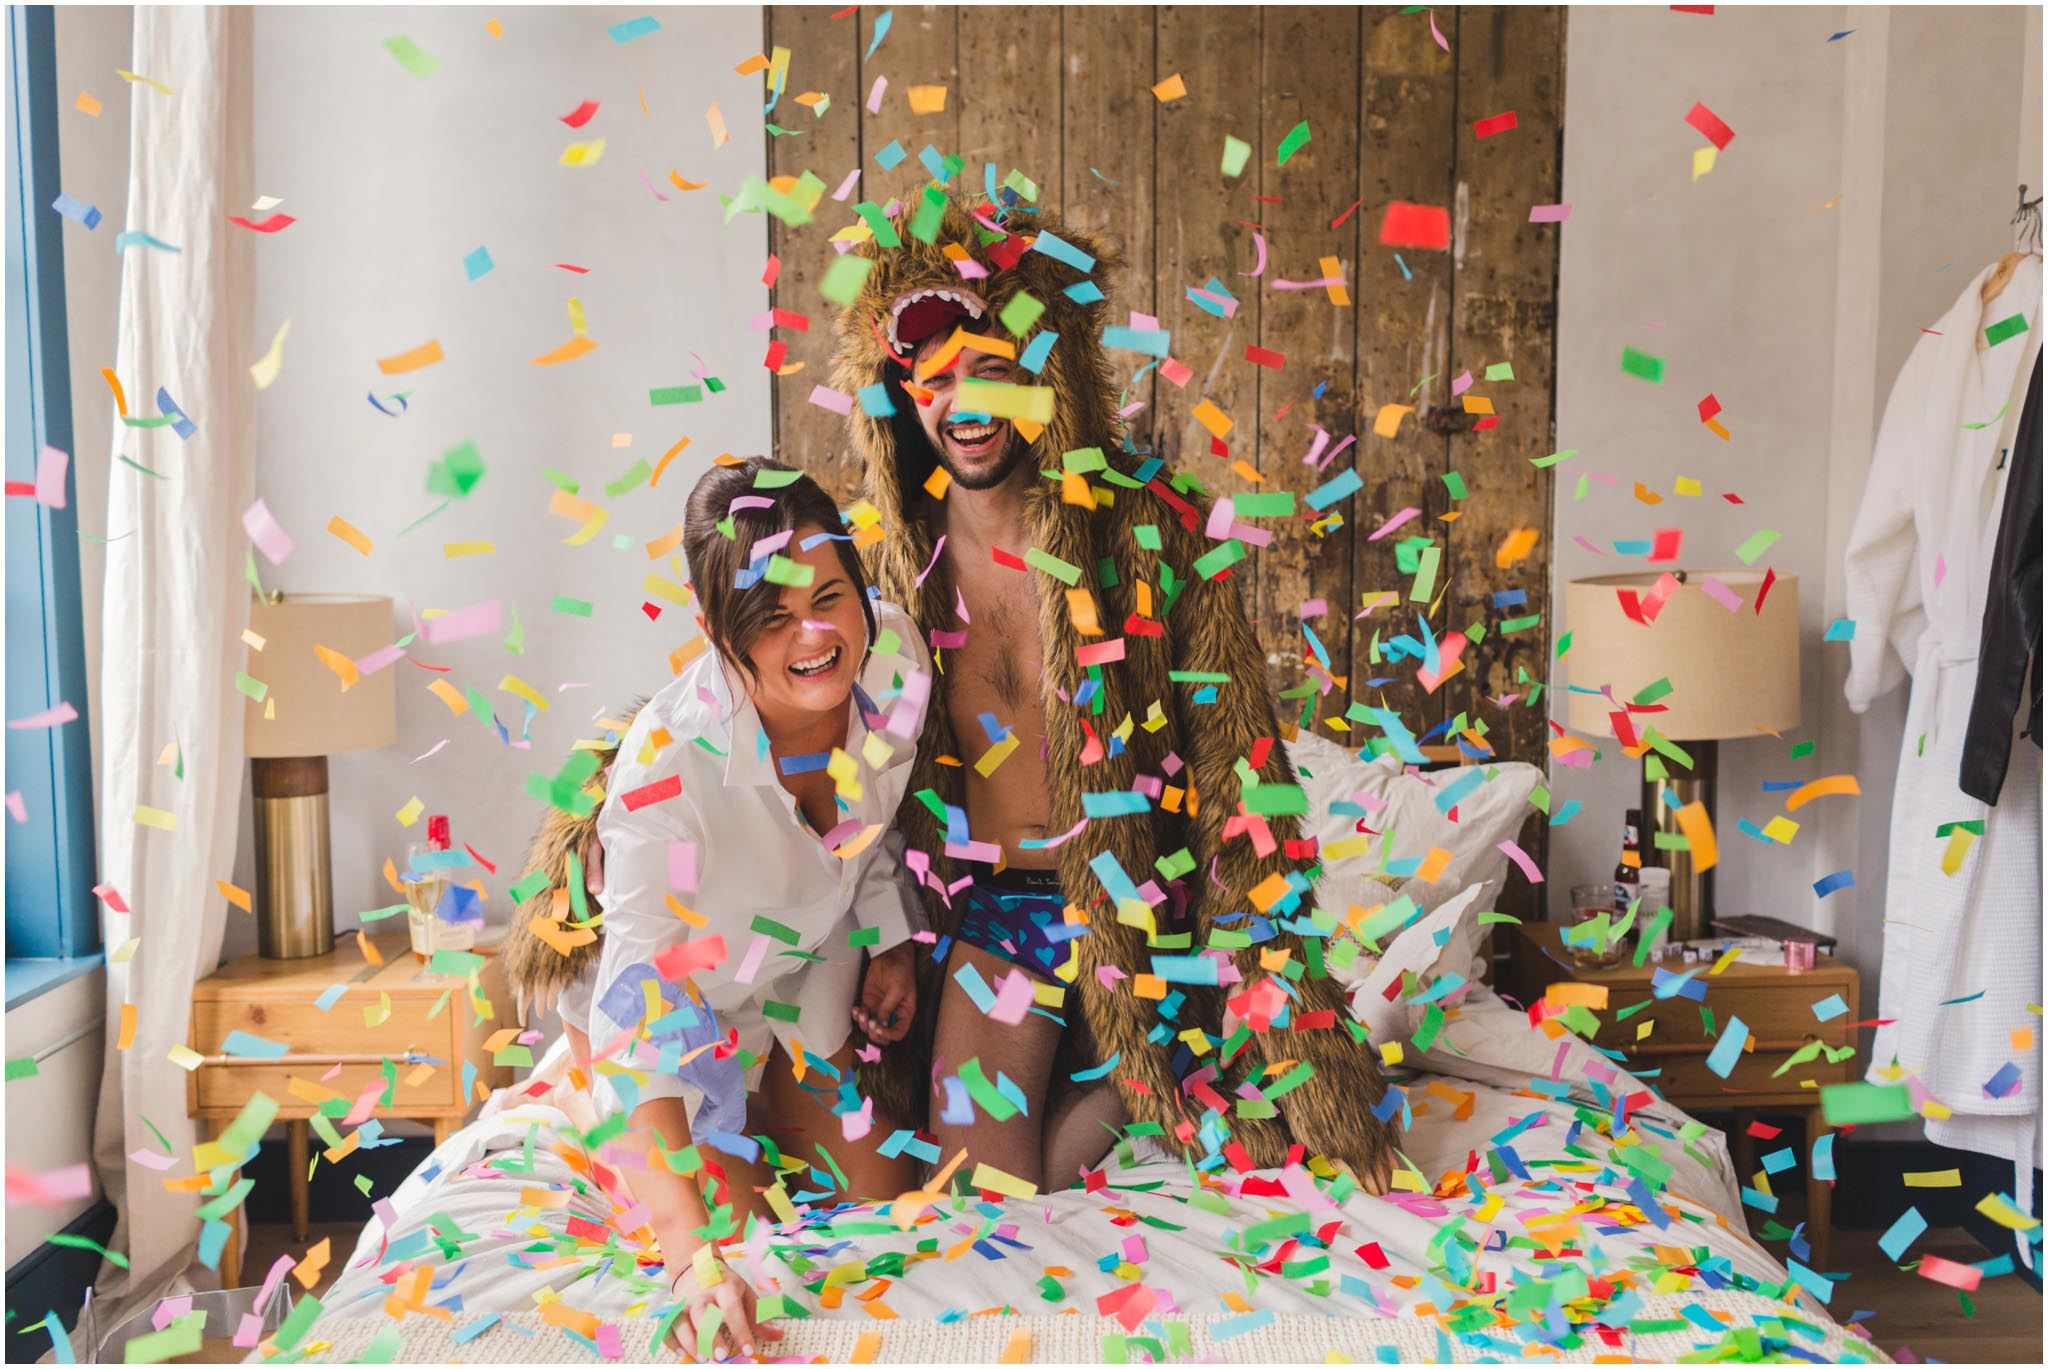 Lokal Hotel, engagement, confetti